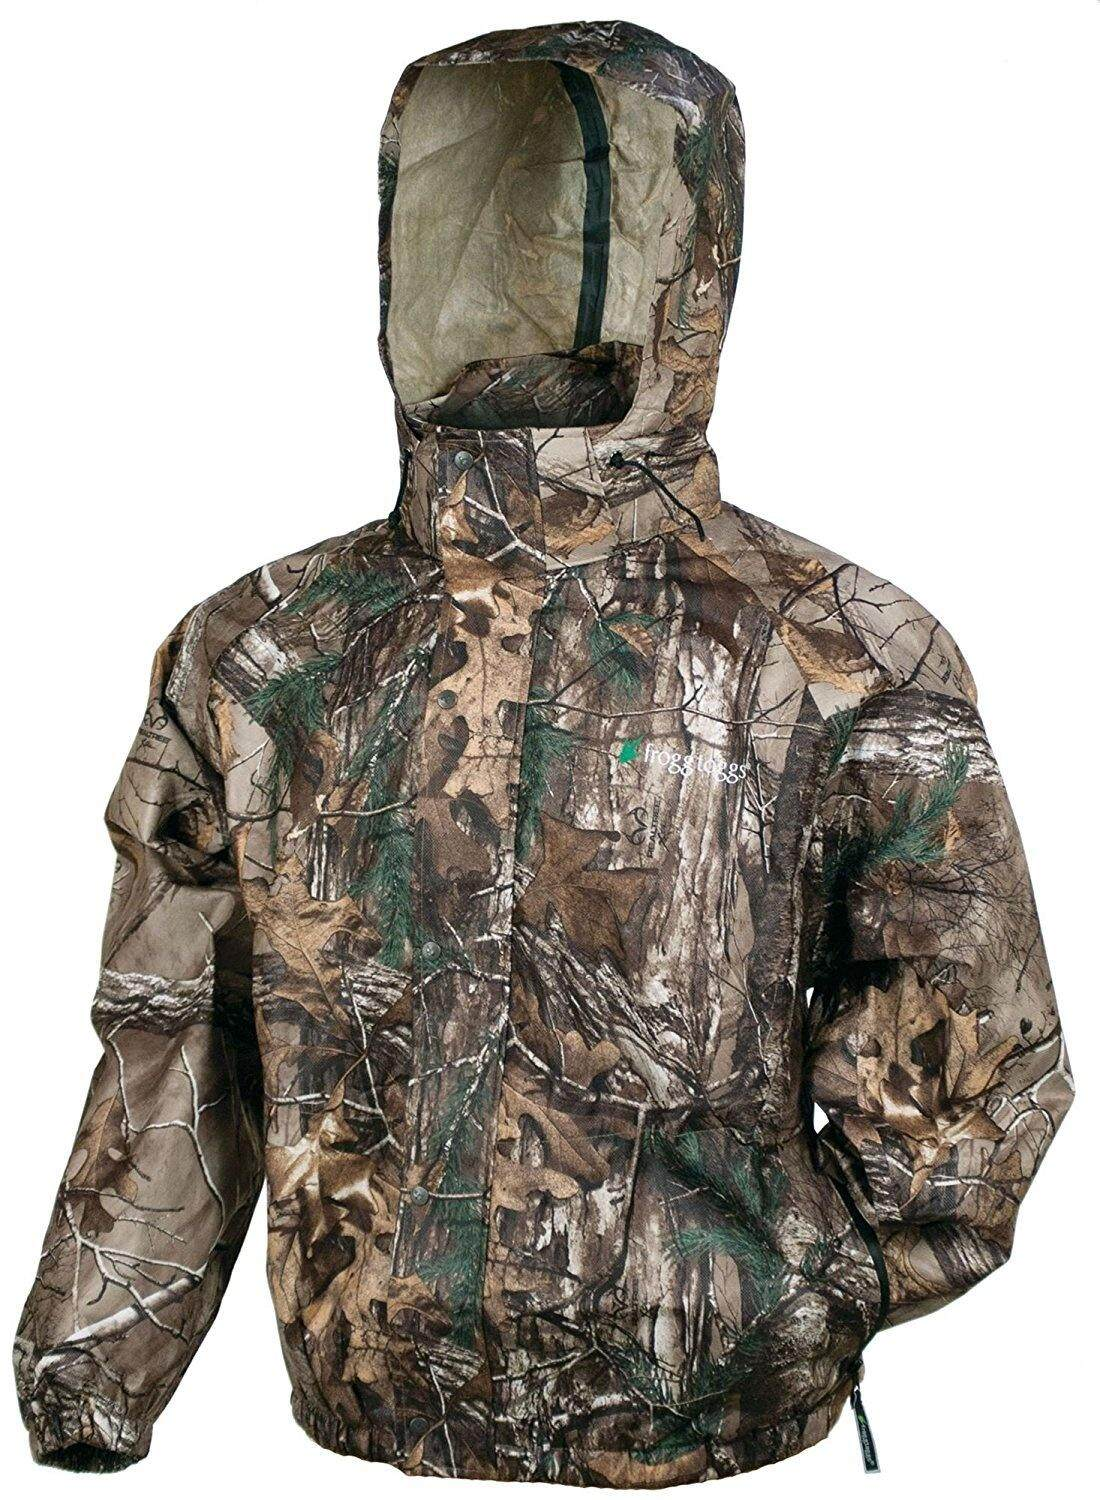 49f7954802fef (Large, Mossy Oak Break Up Country) - Frogg Toggs Pro Action Camo Jacket